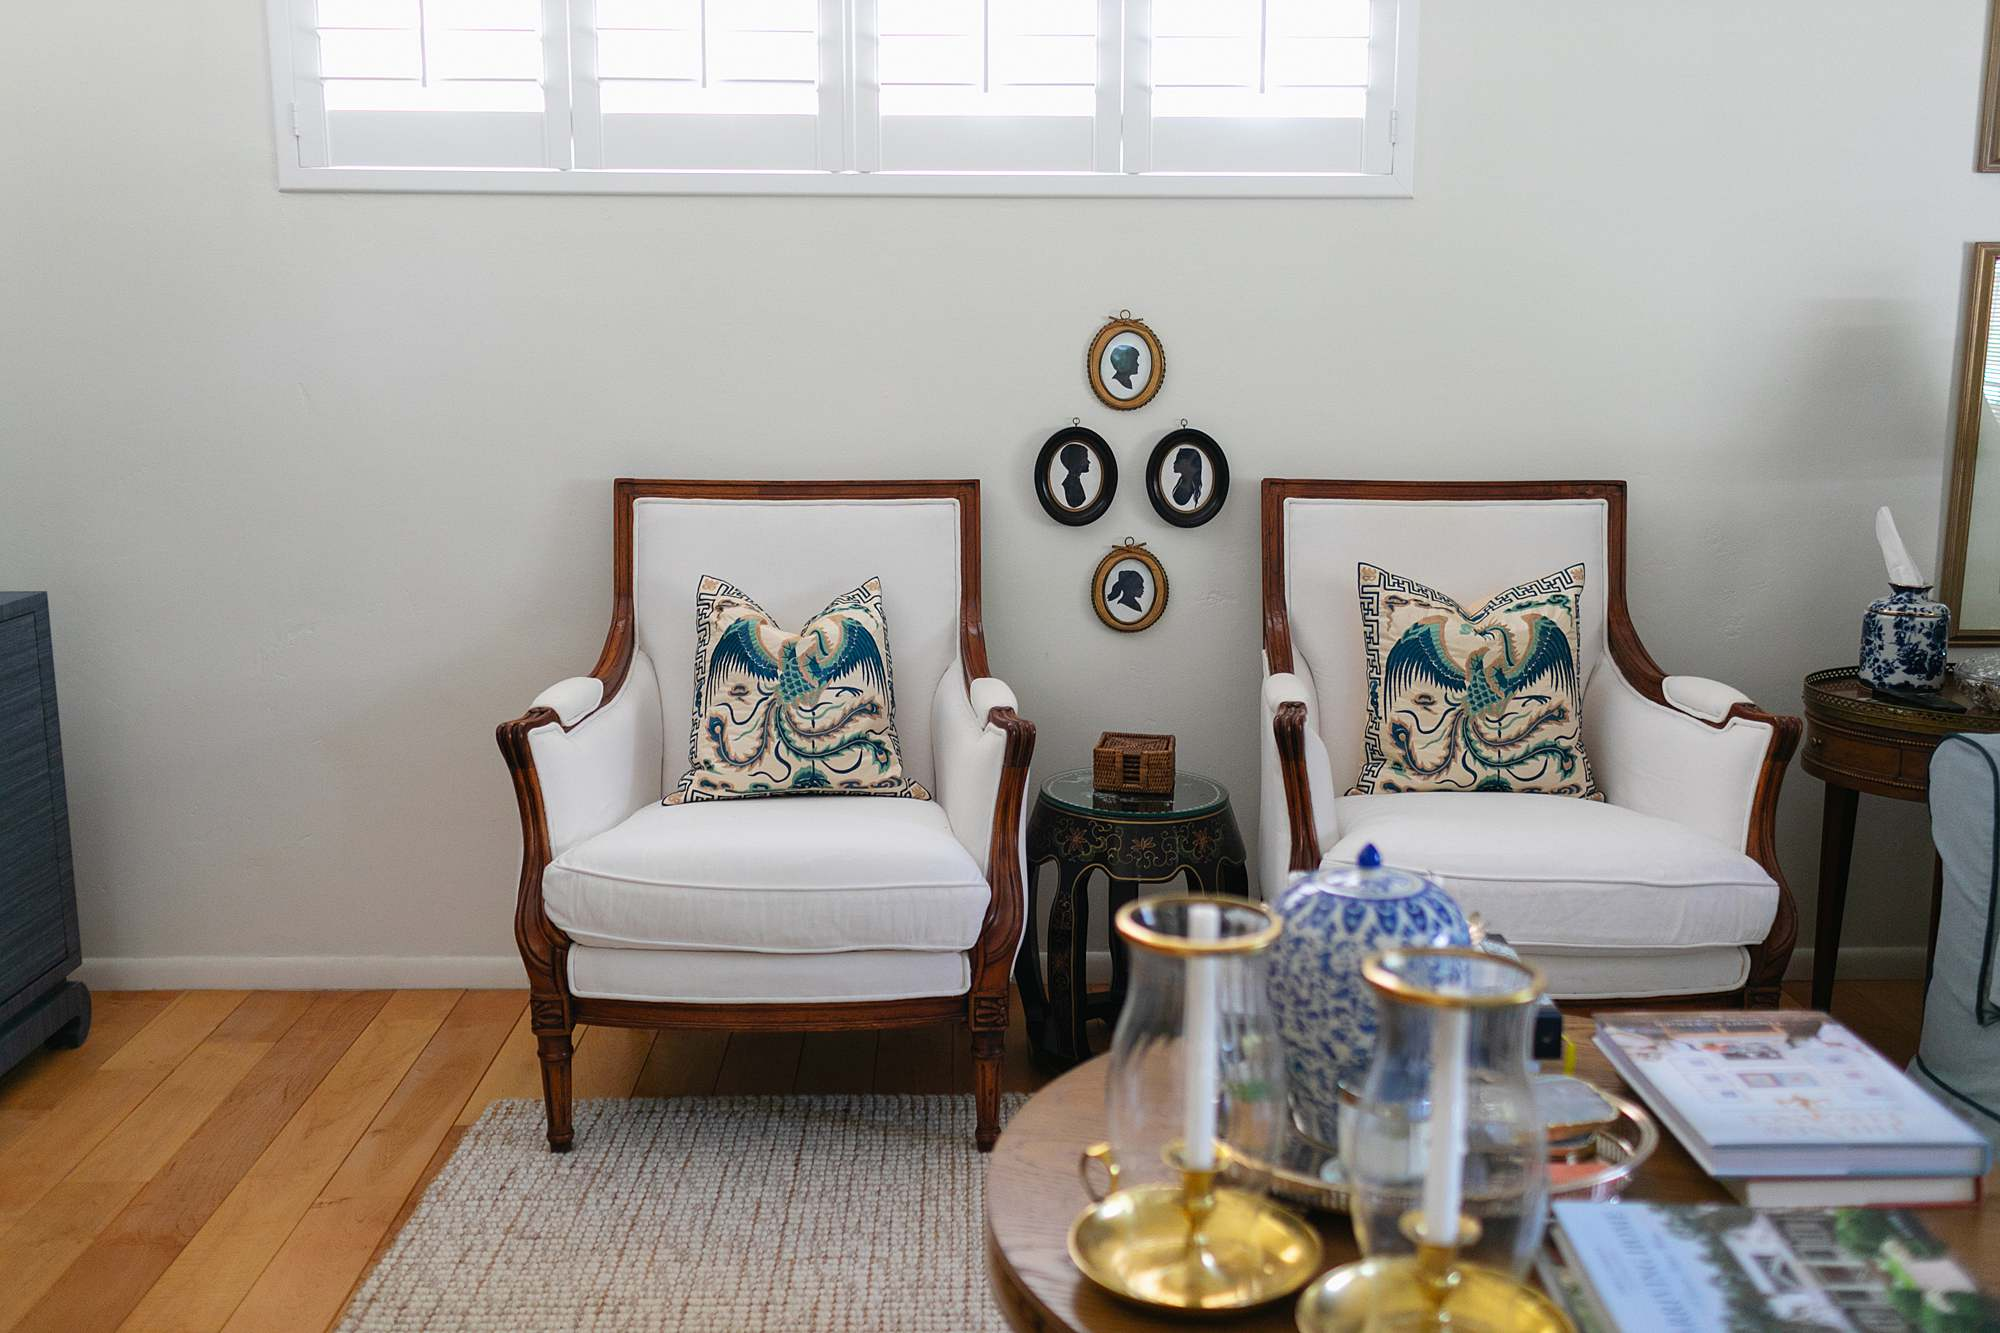 white antique wood chairs with silhouette collection hung between. blue and white living room theme brick home all American grandmillennial decoration